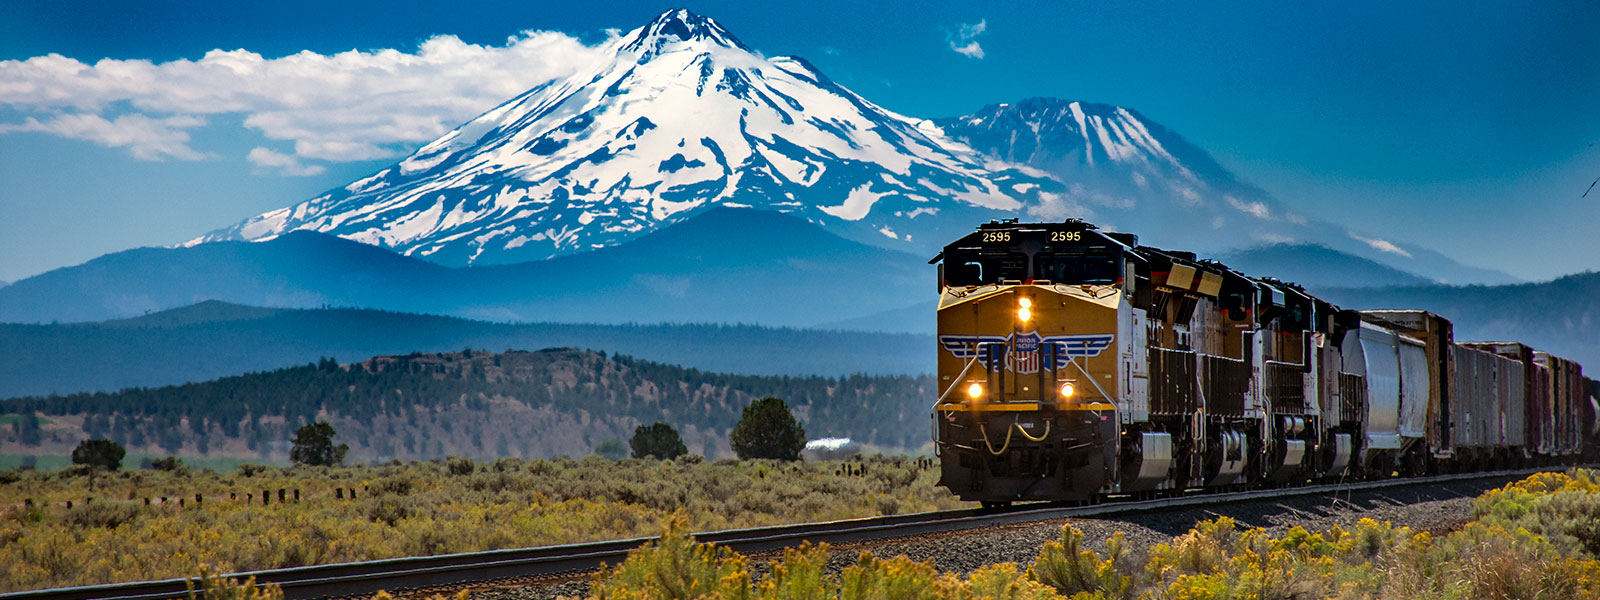 Mt Shasta Landscape with Train